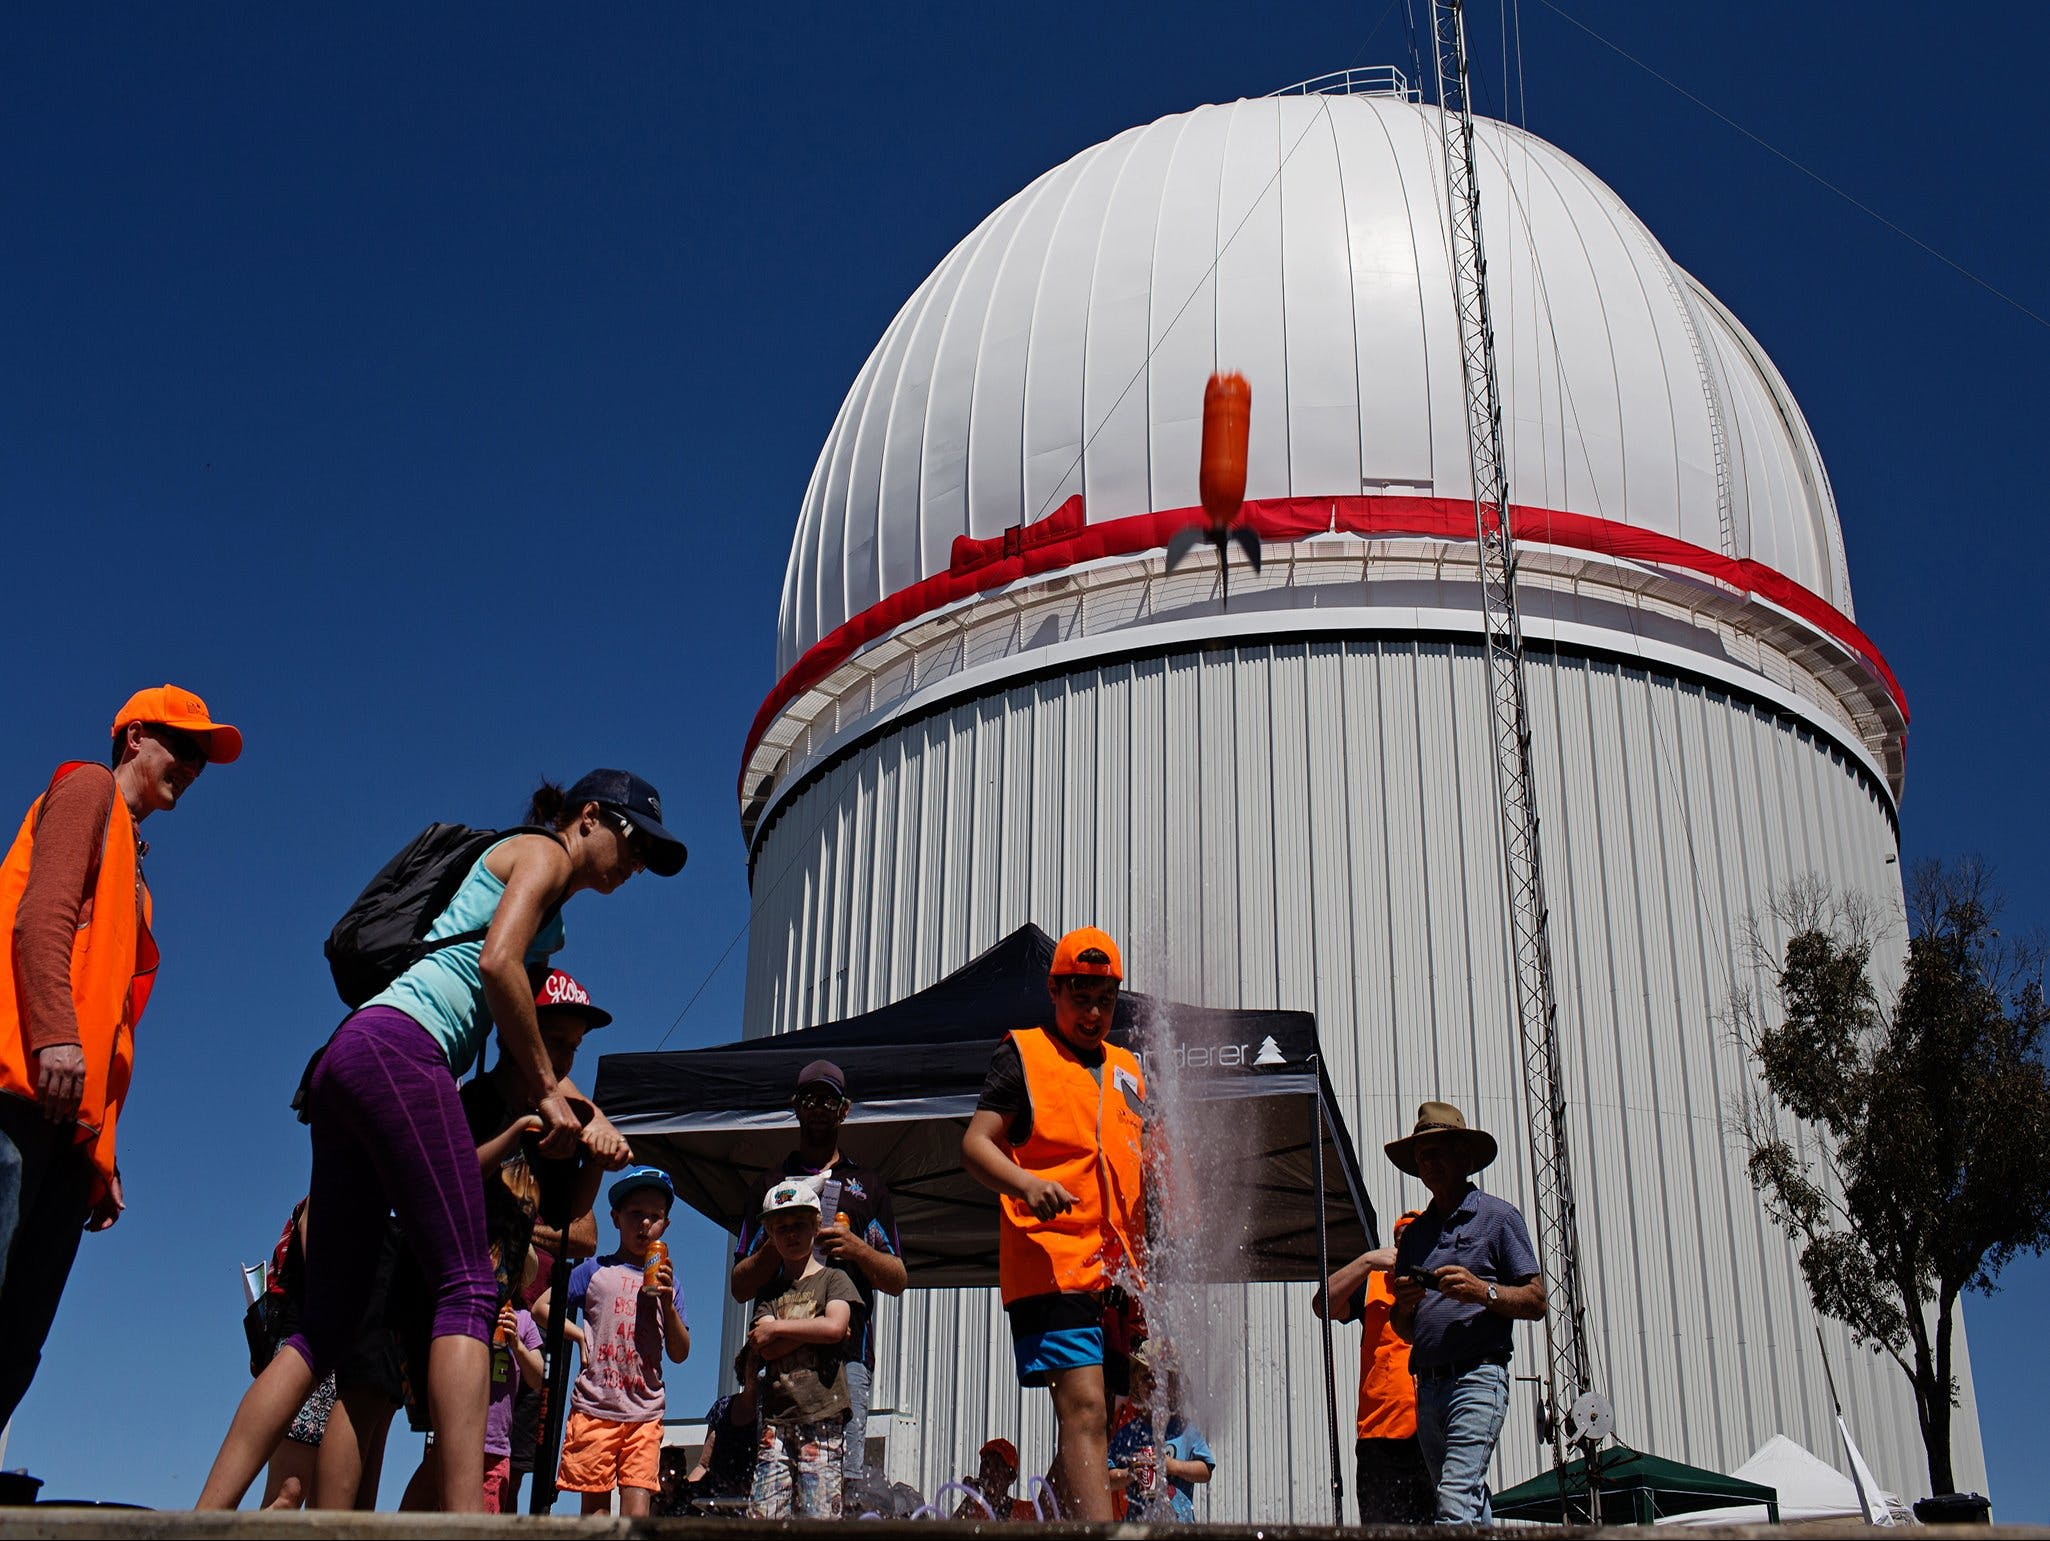 Siding Spring Observatory Open Day - Cancelled due to COVID 19 - New South Wales Tourism